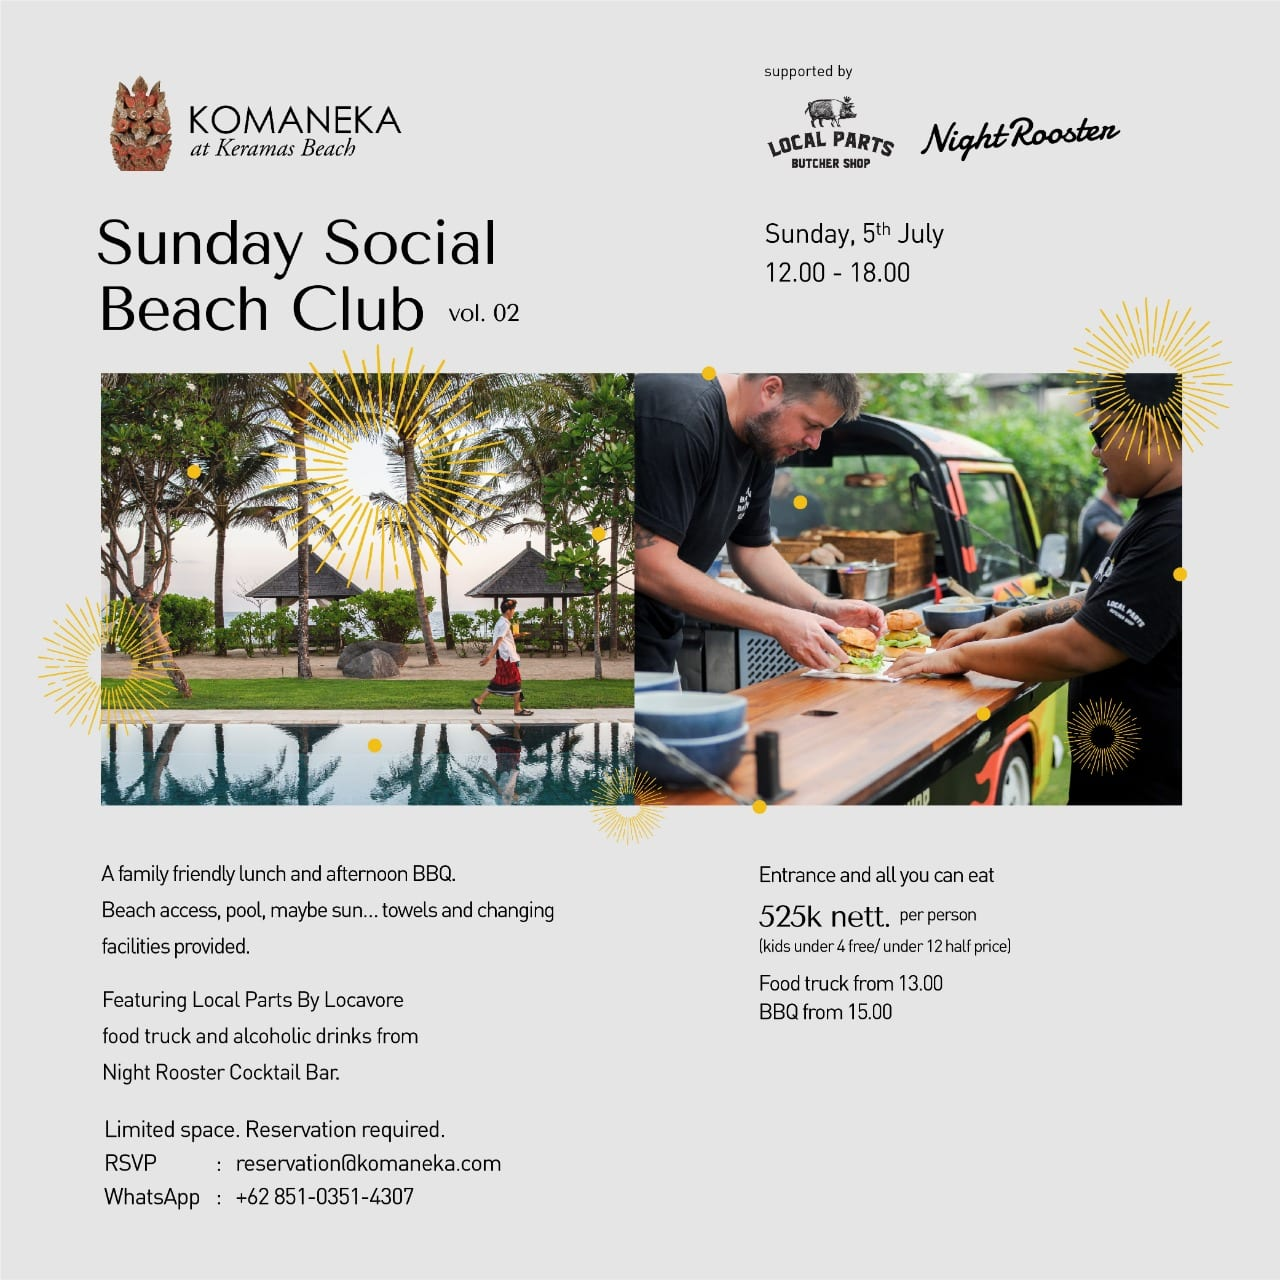 Sunday Social Beach Club Vol. 02 @ Komaneka at Keramas Beach